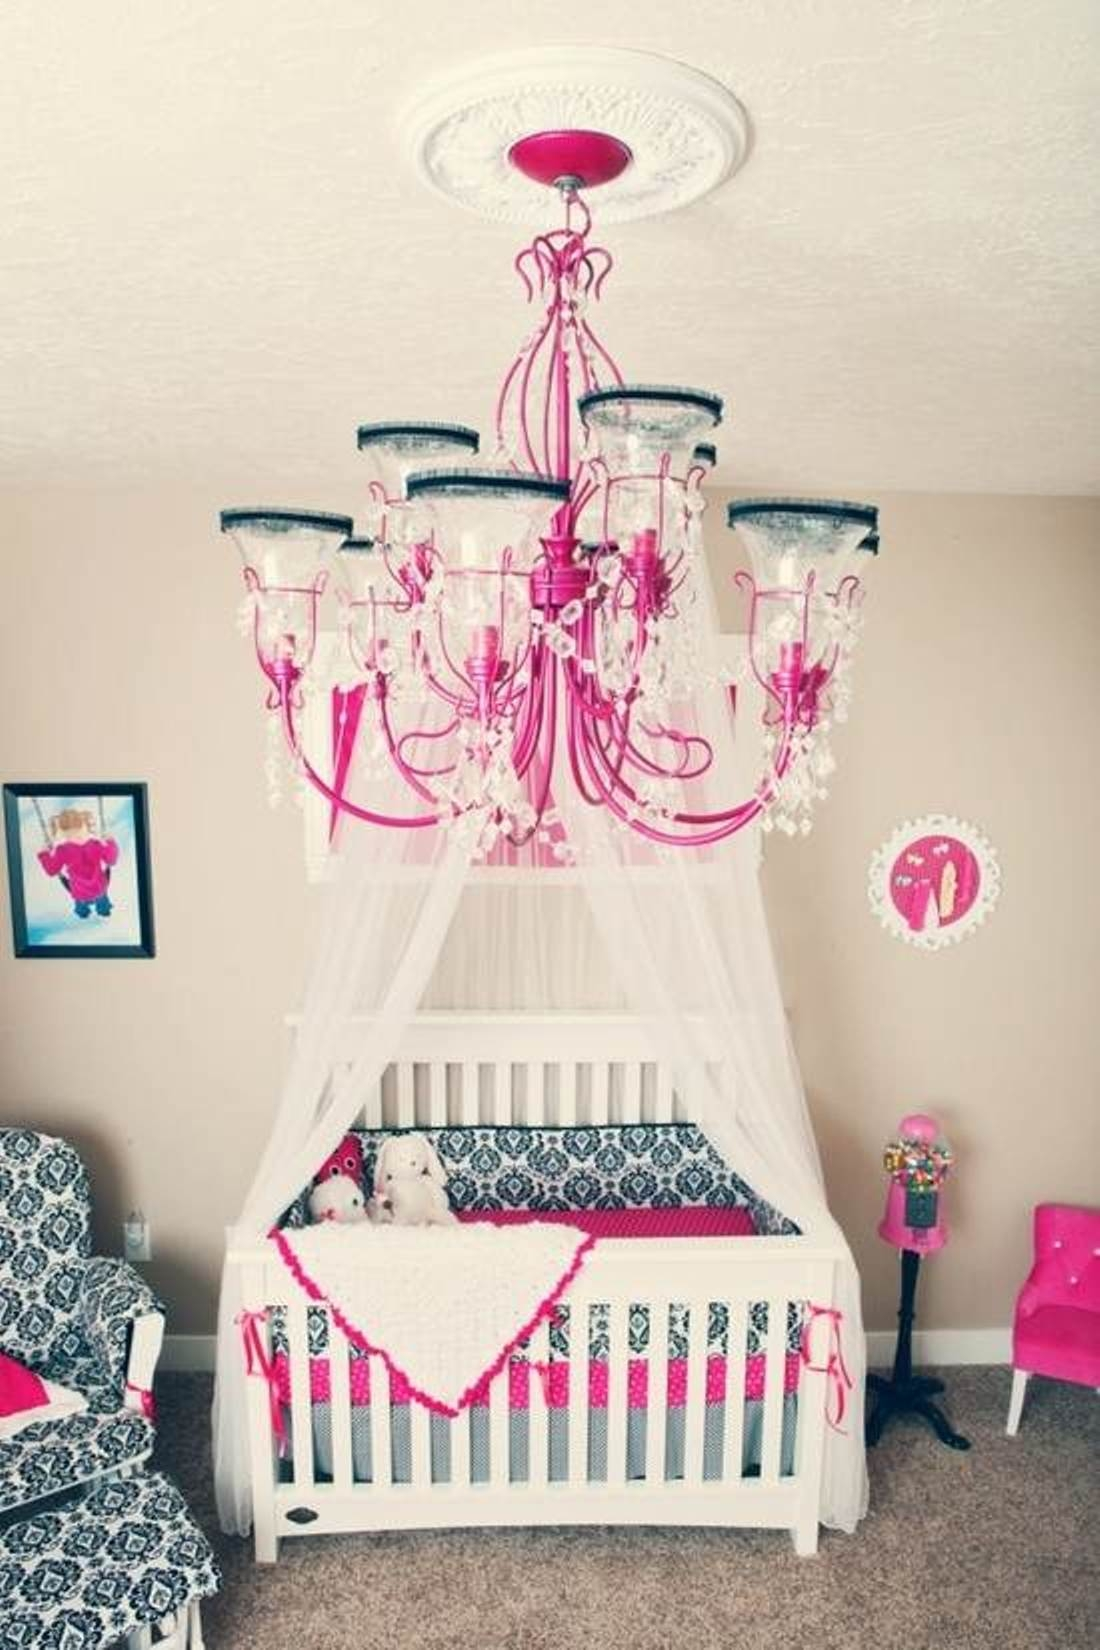 Lamp Create An Adorable Room For Your Little Girl With Chandelier Regarding Cheap Chandeliers For Baby Girl Room (Image 15 of 25)